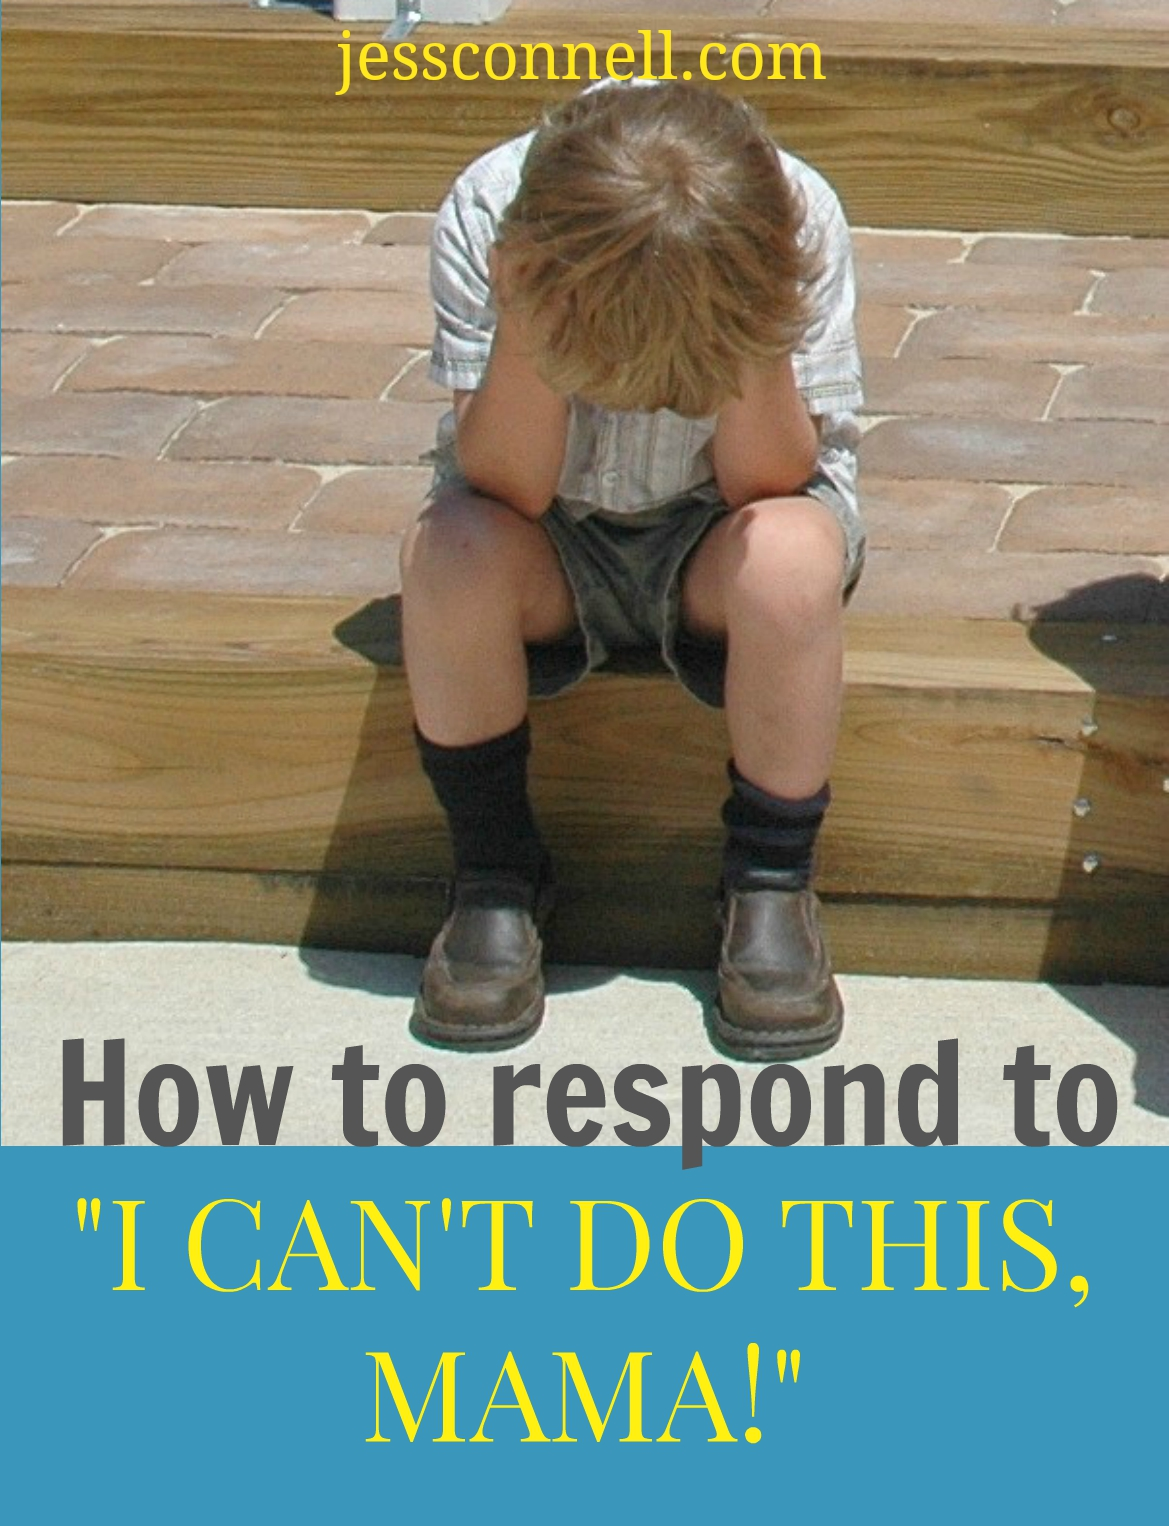 "How to Respond to, ""I CAN'T DO THIS, MAMA!"" // jessconnell.com"